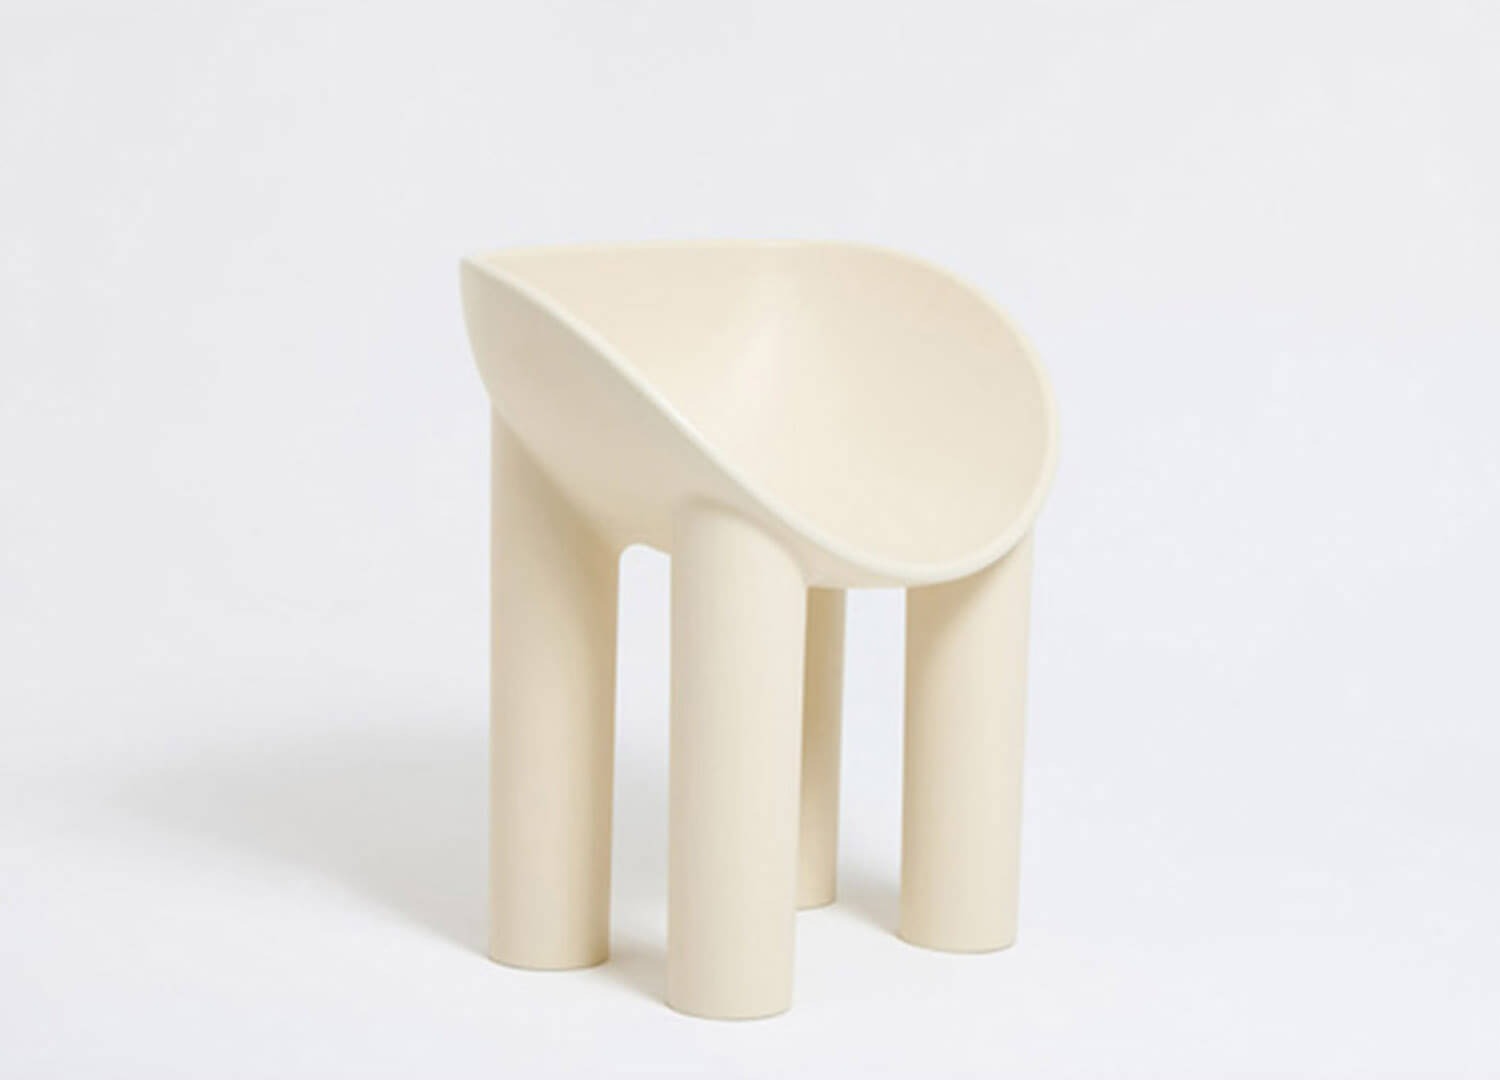 Roly Poly Dining Chair Faye Toogood